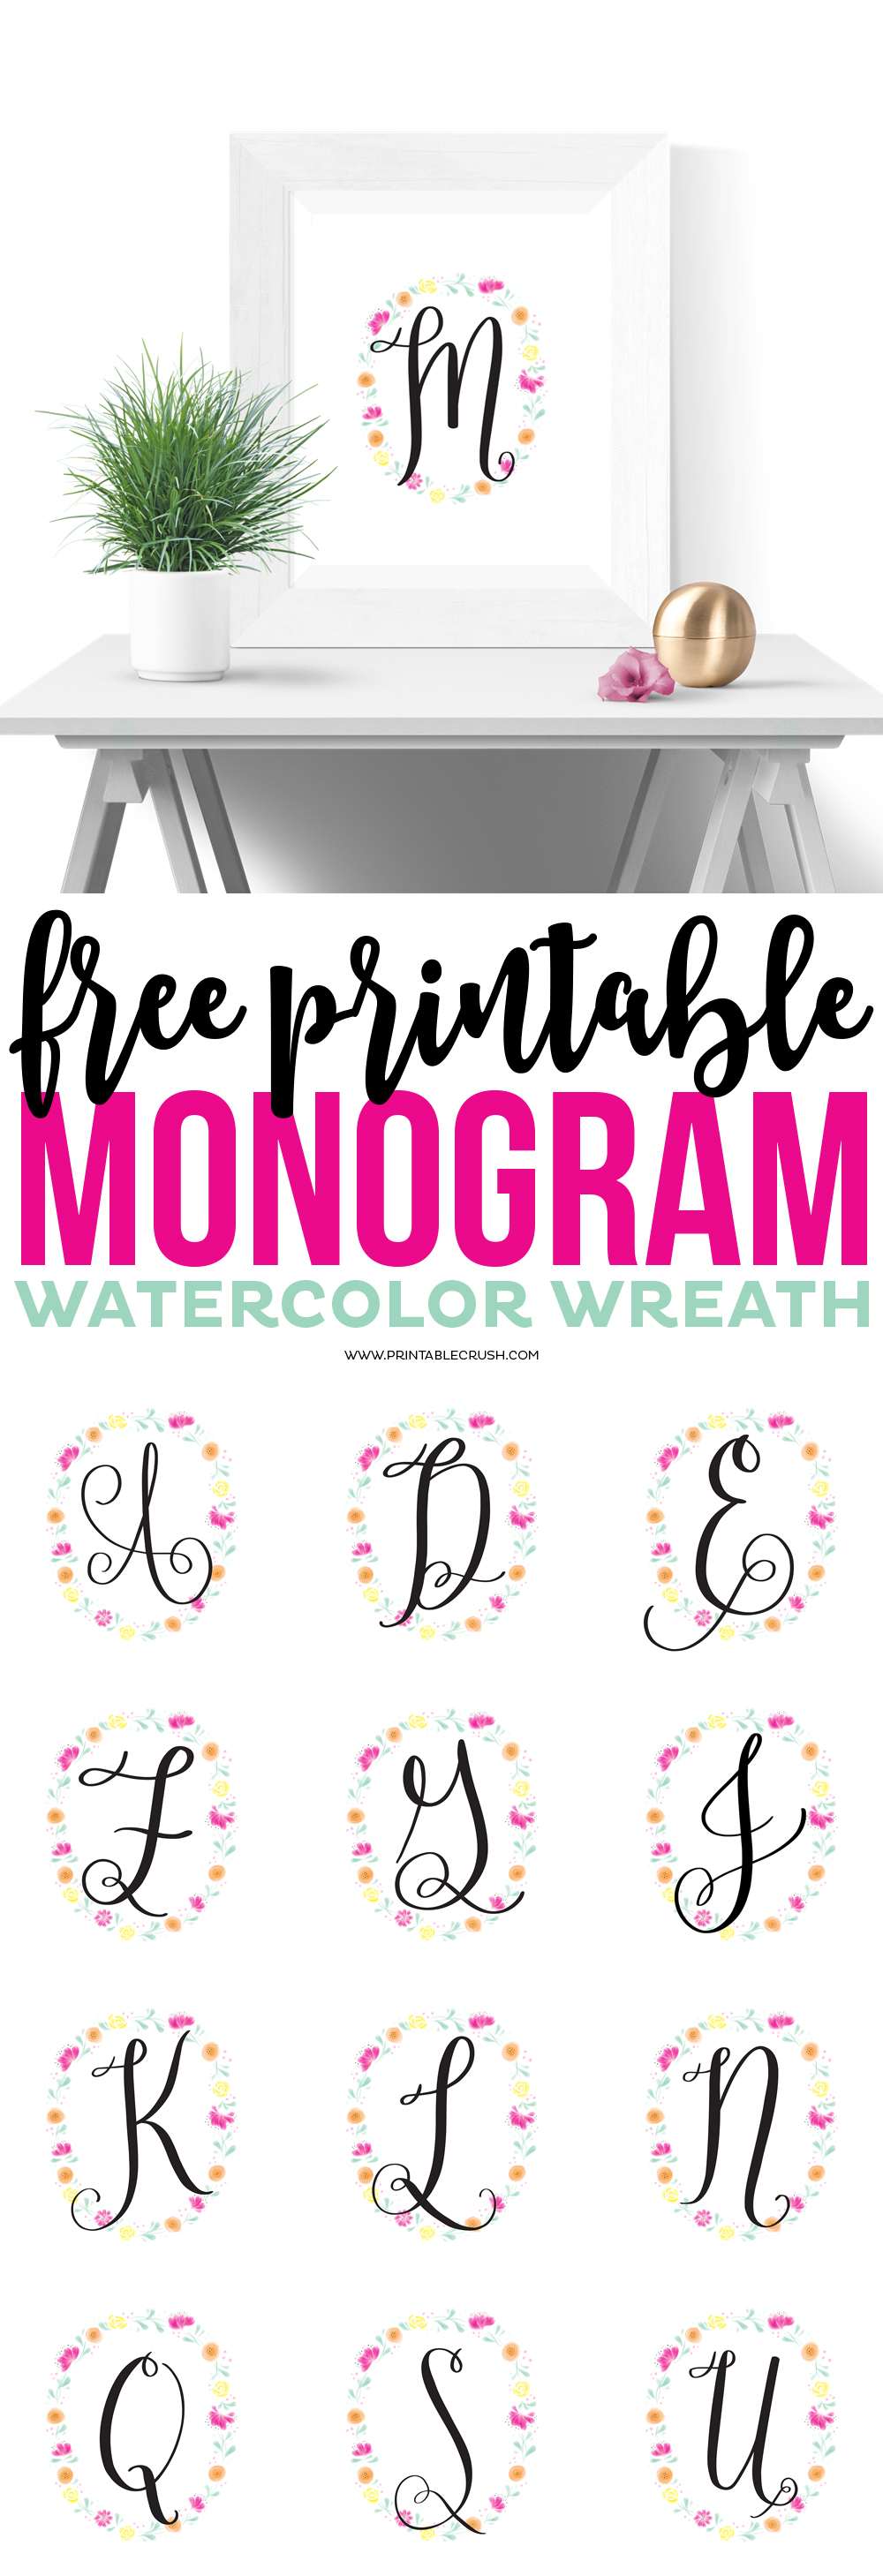 http://printablecrush.com/wp-content/uploads/2017/01/FREE-Printable-Monogram-Watercolor-Wreath-2.jpg